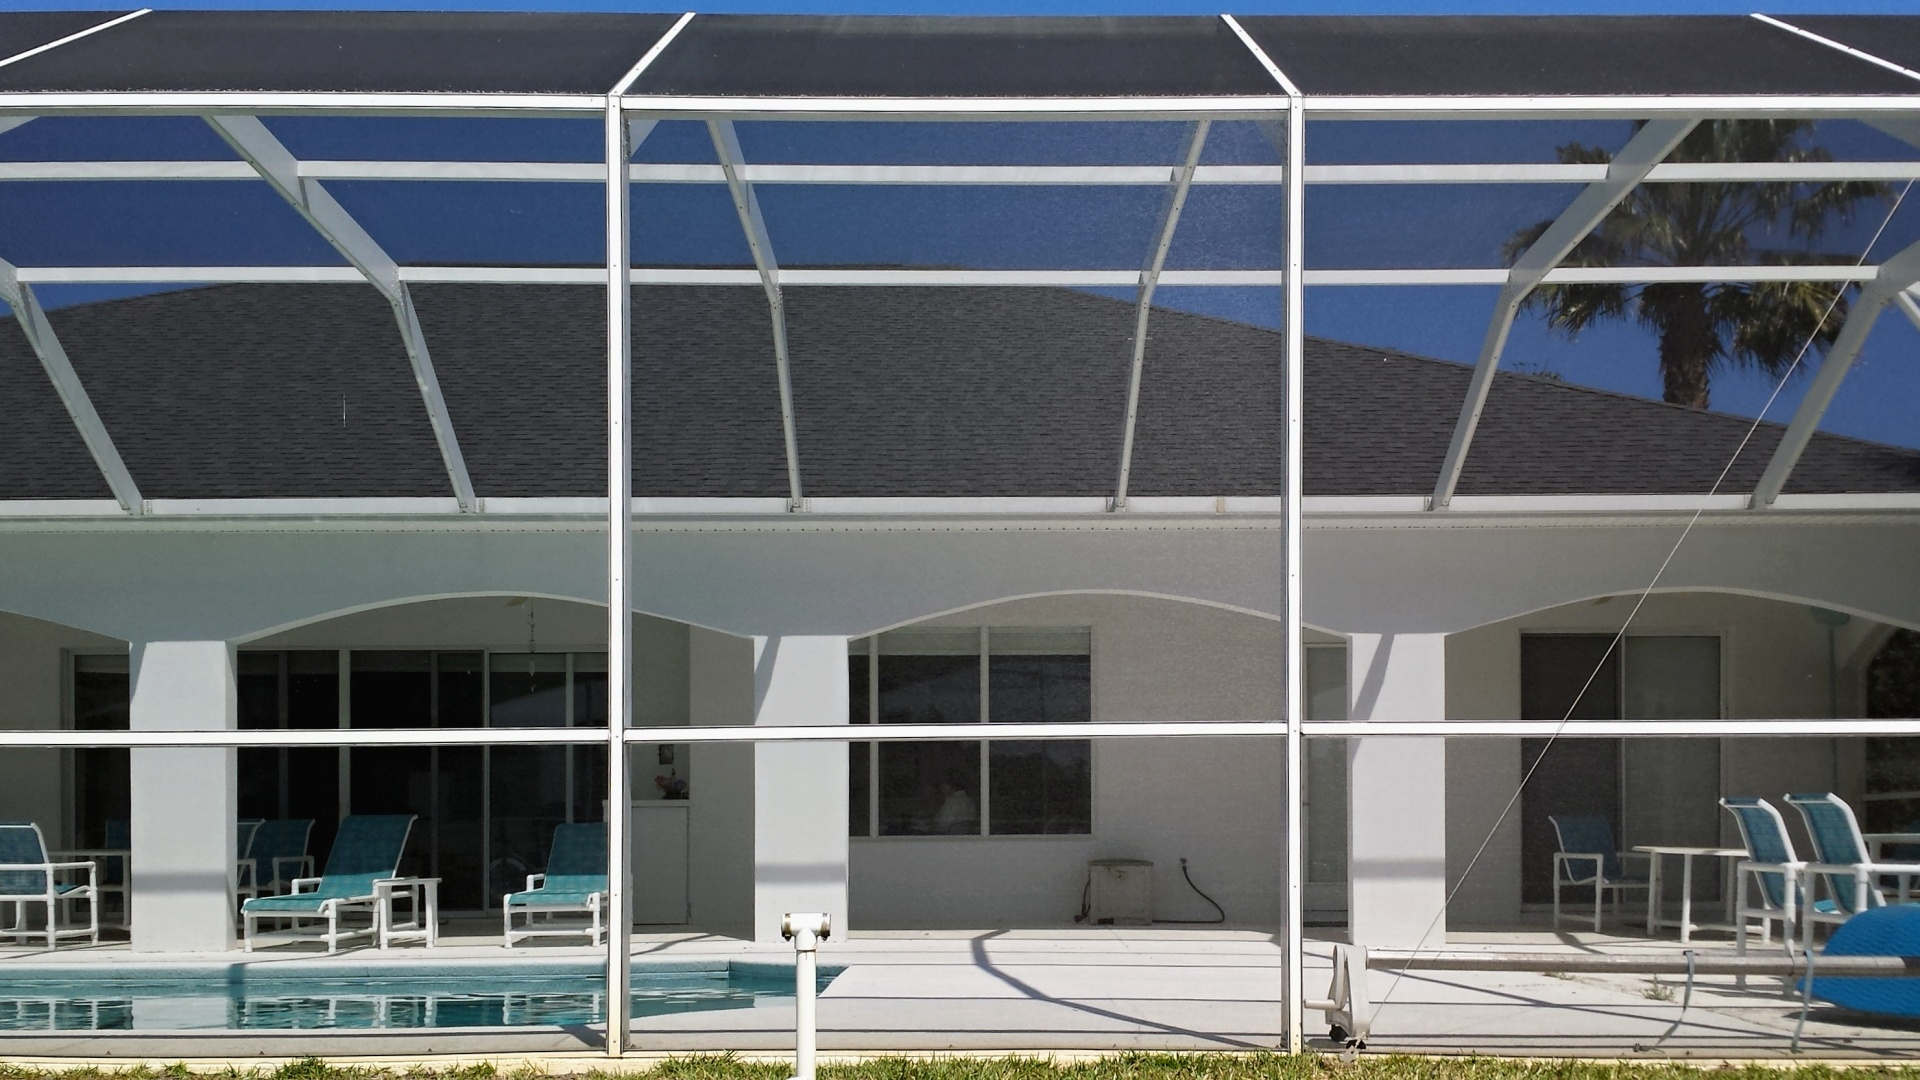 pool-screen-repair-ormond-beach-10-1080p.jpg